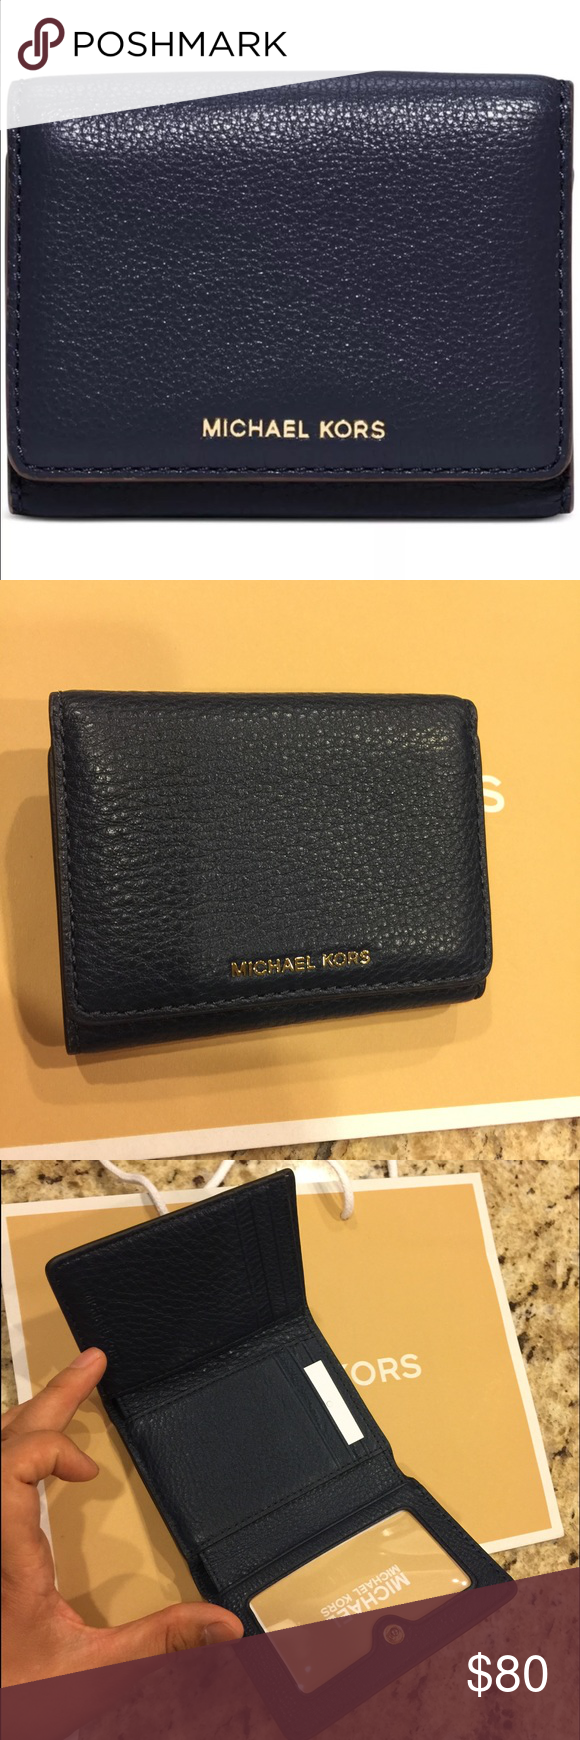 63f5195f3520 NWT MK billfold navy leather wallet Authentic Michael Kors Liane Small  Billfold Wallet in Navy Blue